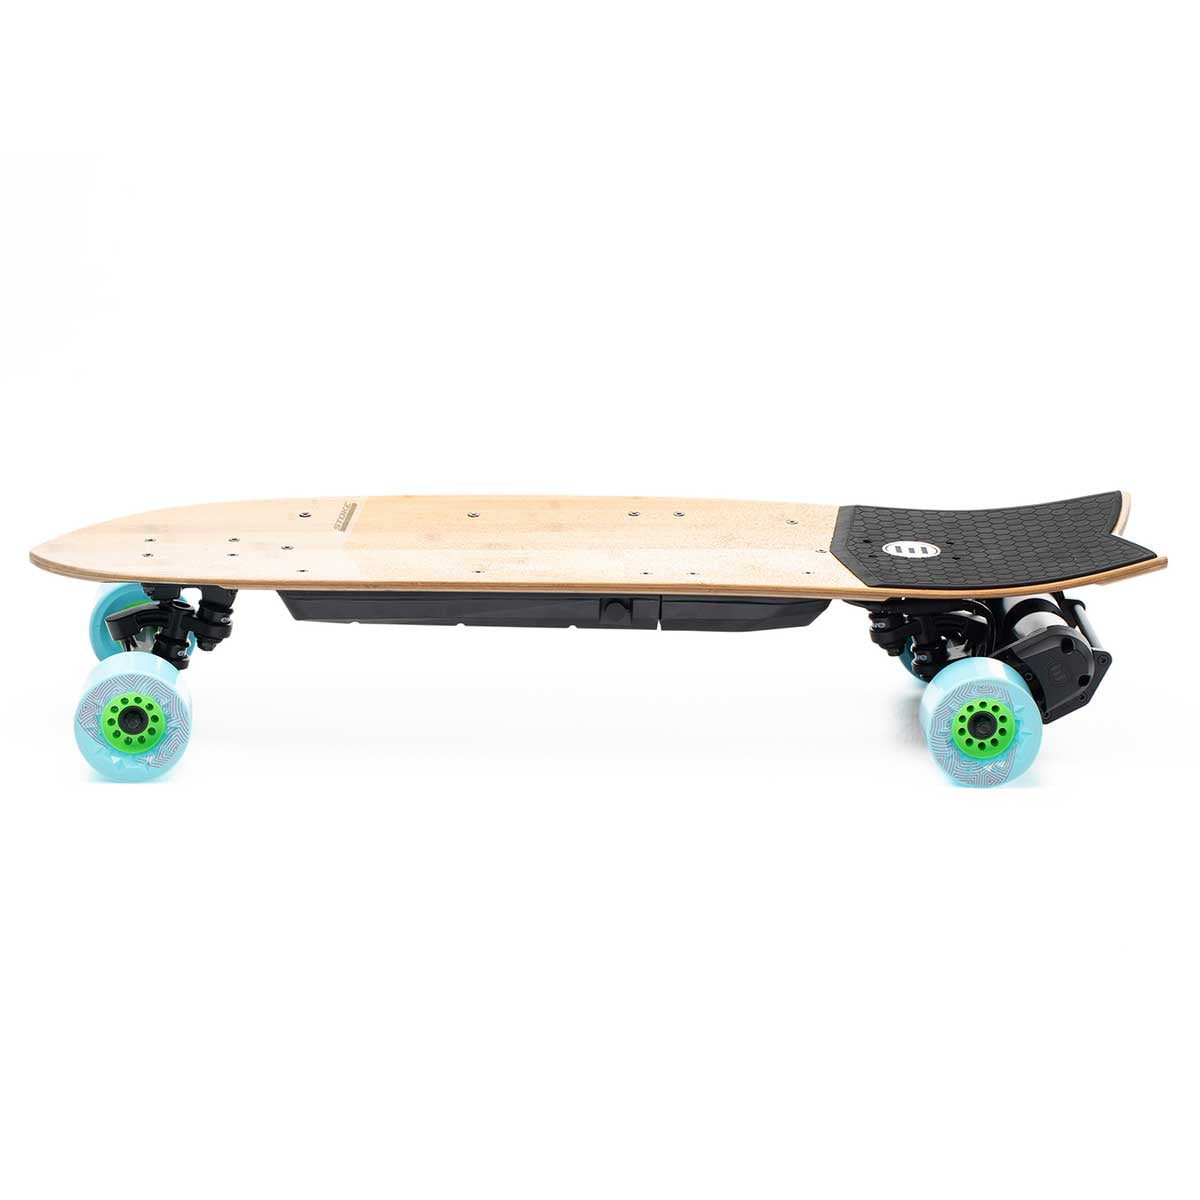 Evolve Skateboards Stoke - Caguama 77a